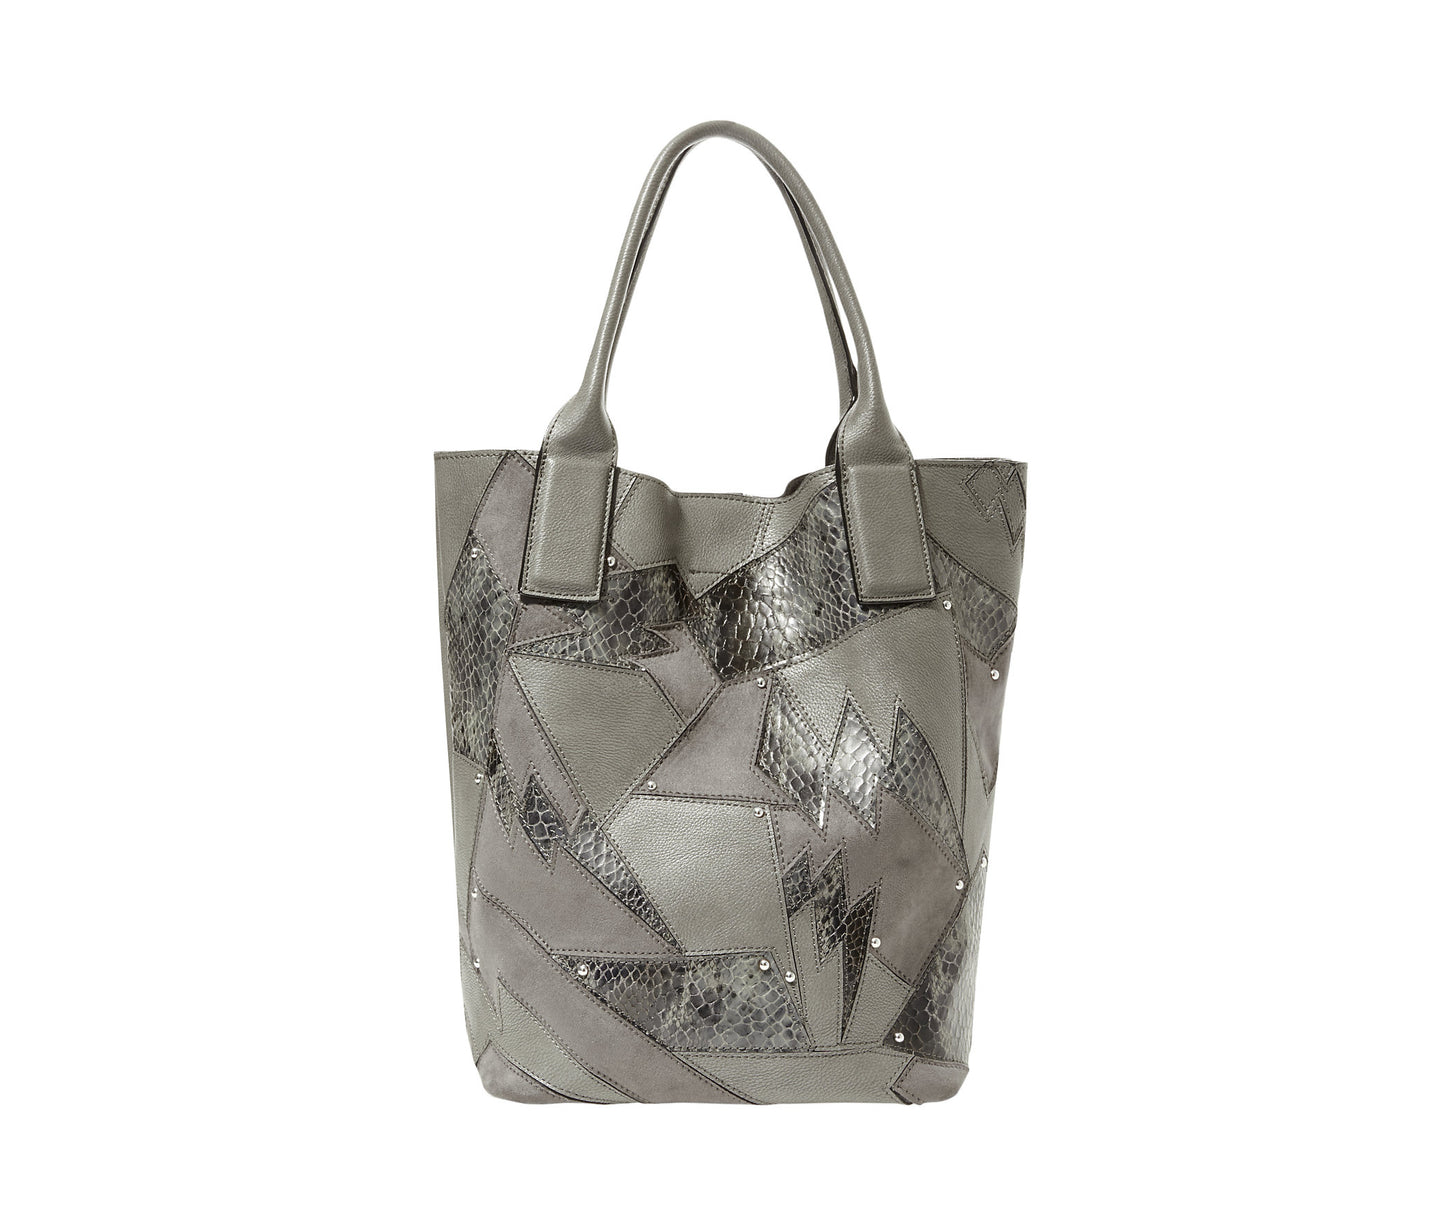 SHOCK IT TO ME TOTE GREY - HANDBAGS - Betsey Johnson